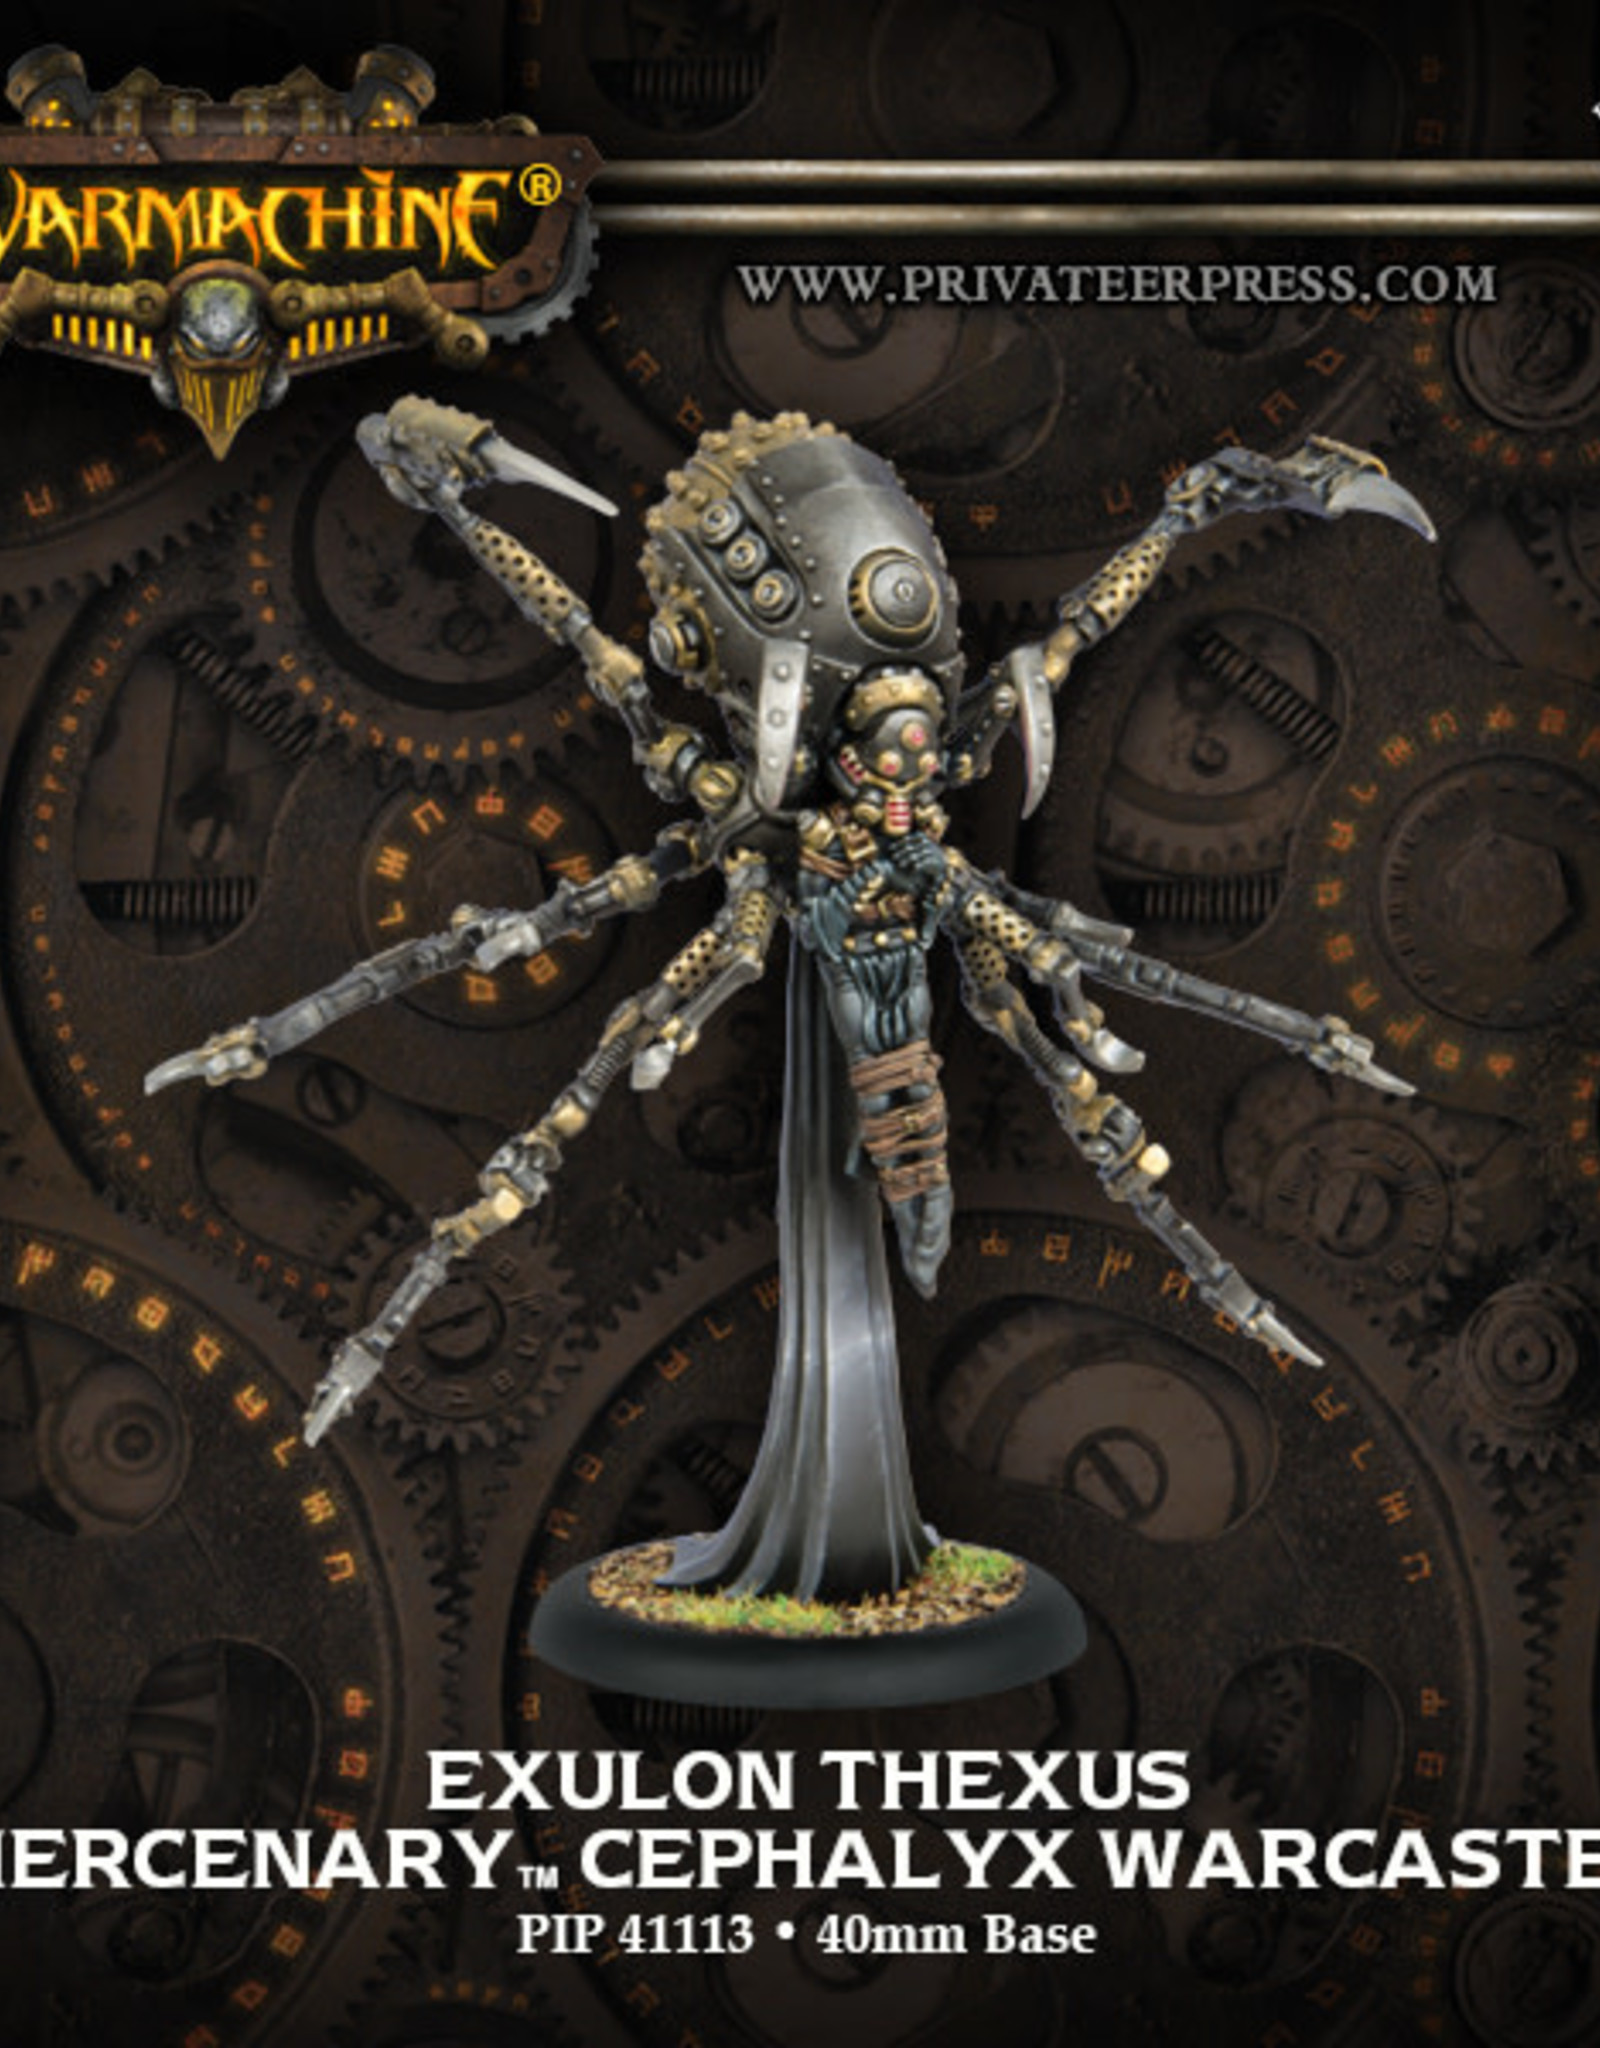 Warmachine Mercenaries - Cephalyx Exulon Thexus